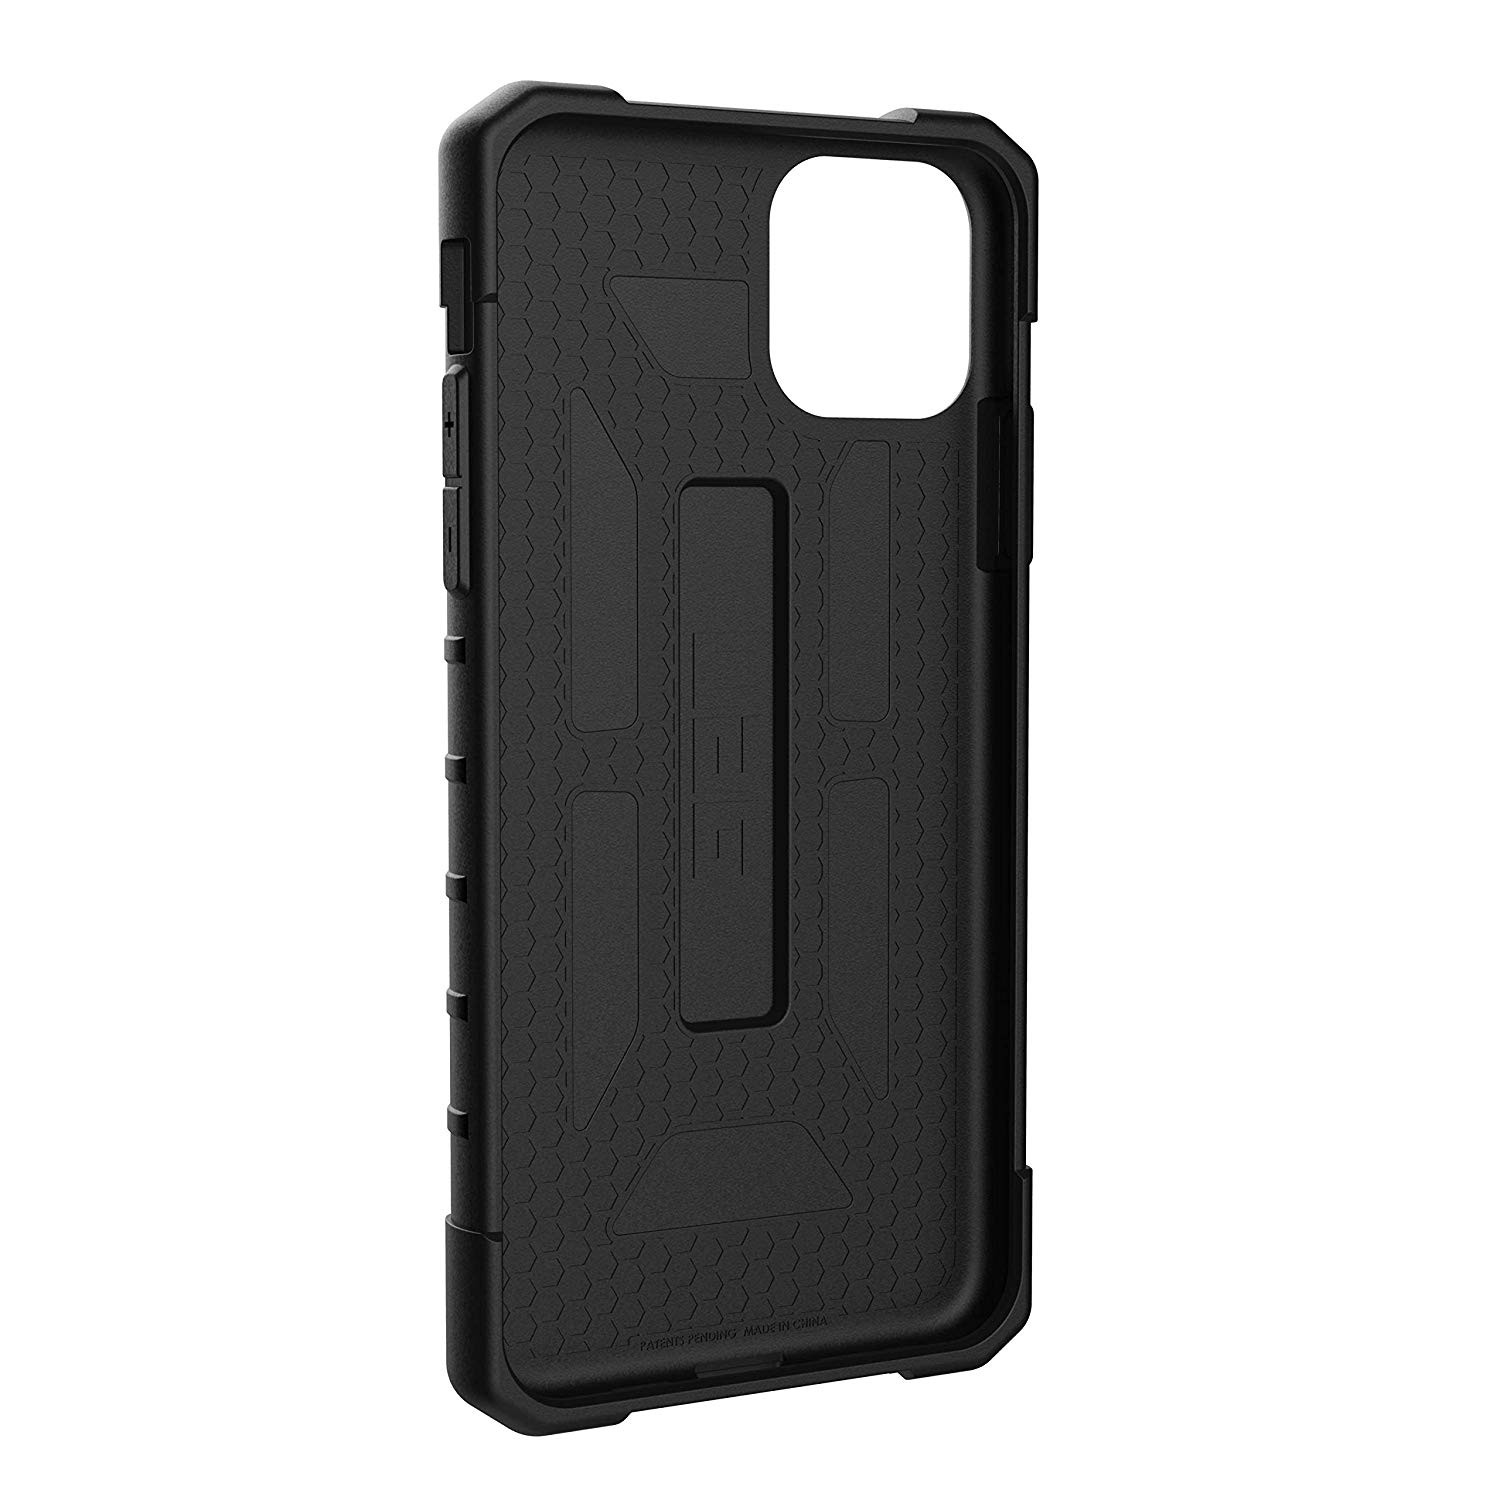 UAG Pathfinder Case for iPhone 11 Pro Max, Feather-Light Rugged Military Drop Tested - Black, 111727114040